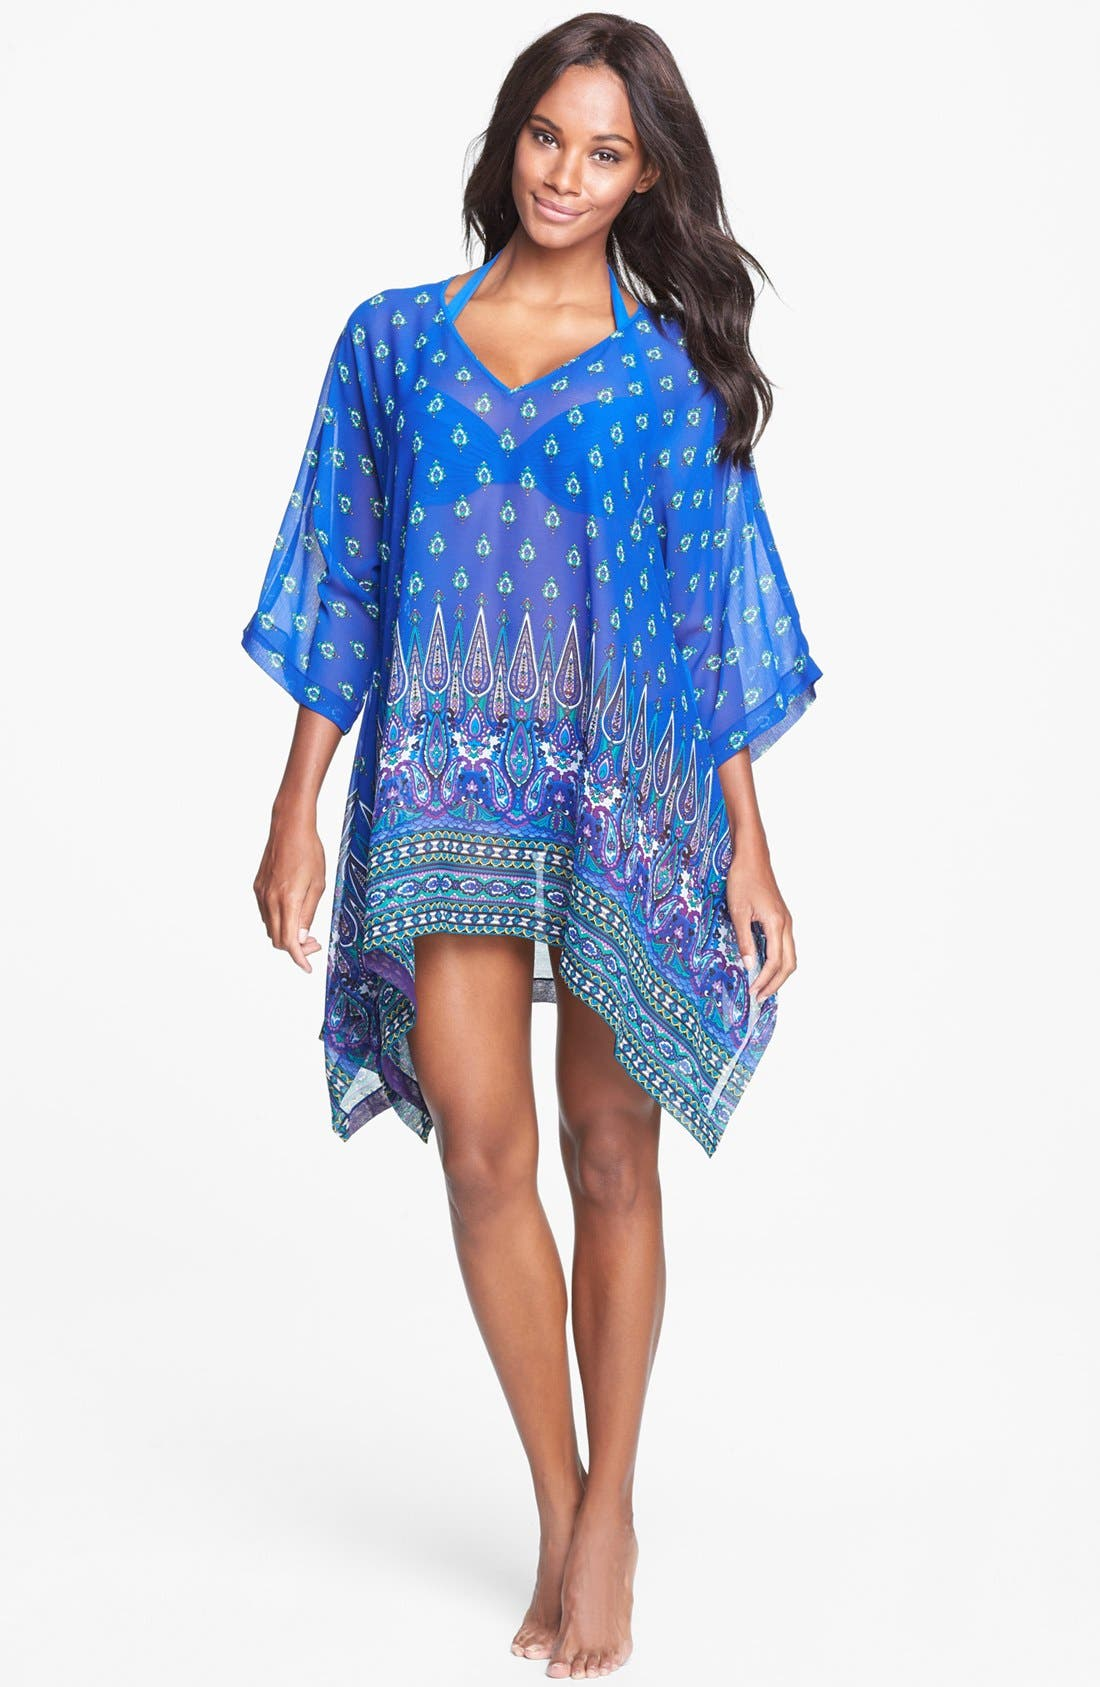 Alternate Image 1 Selected - Tommy Bahama 'Foulard Frenzy' Cover-Up Tunic